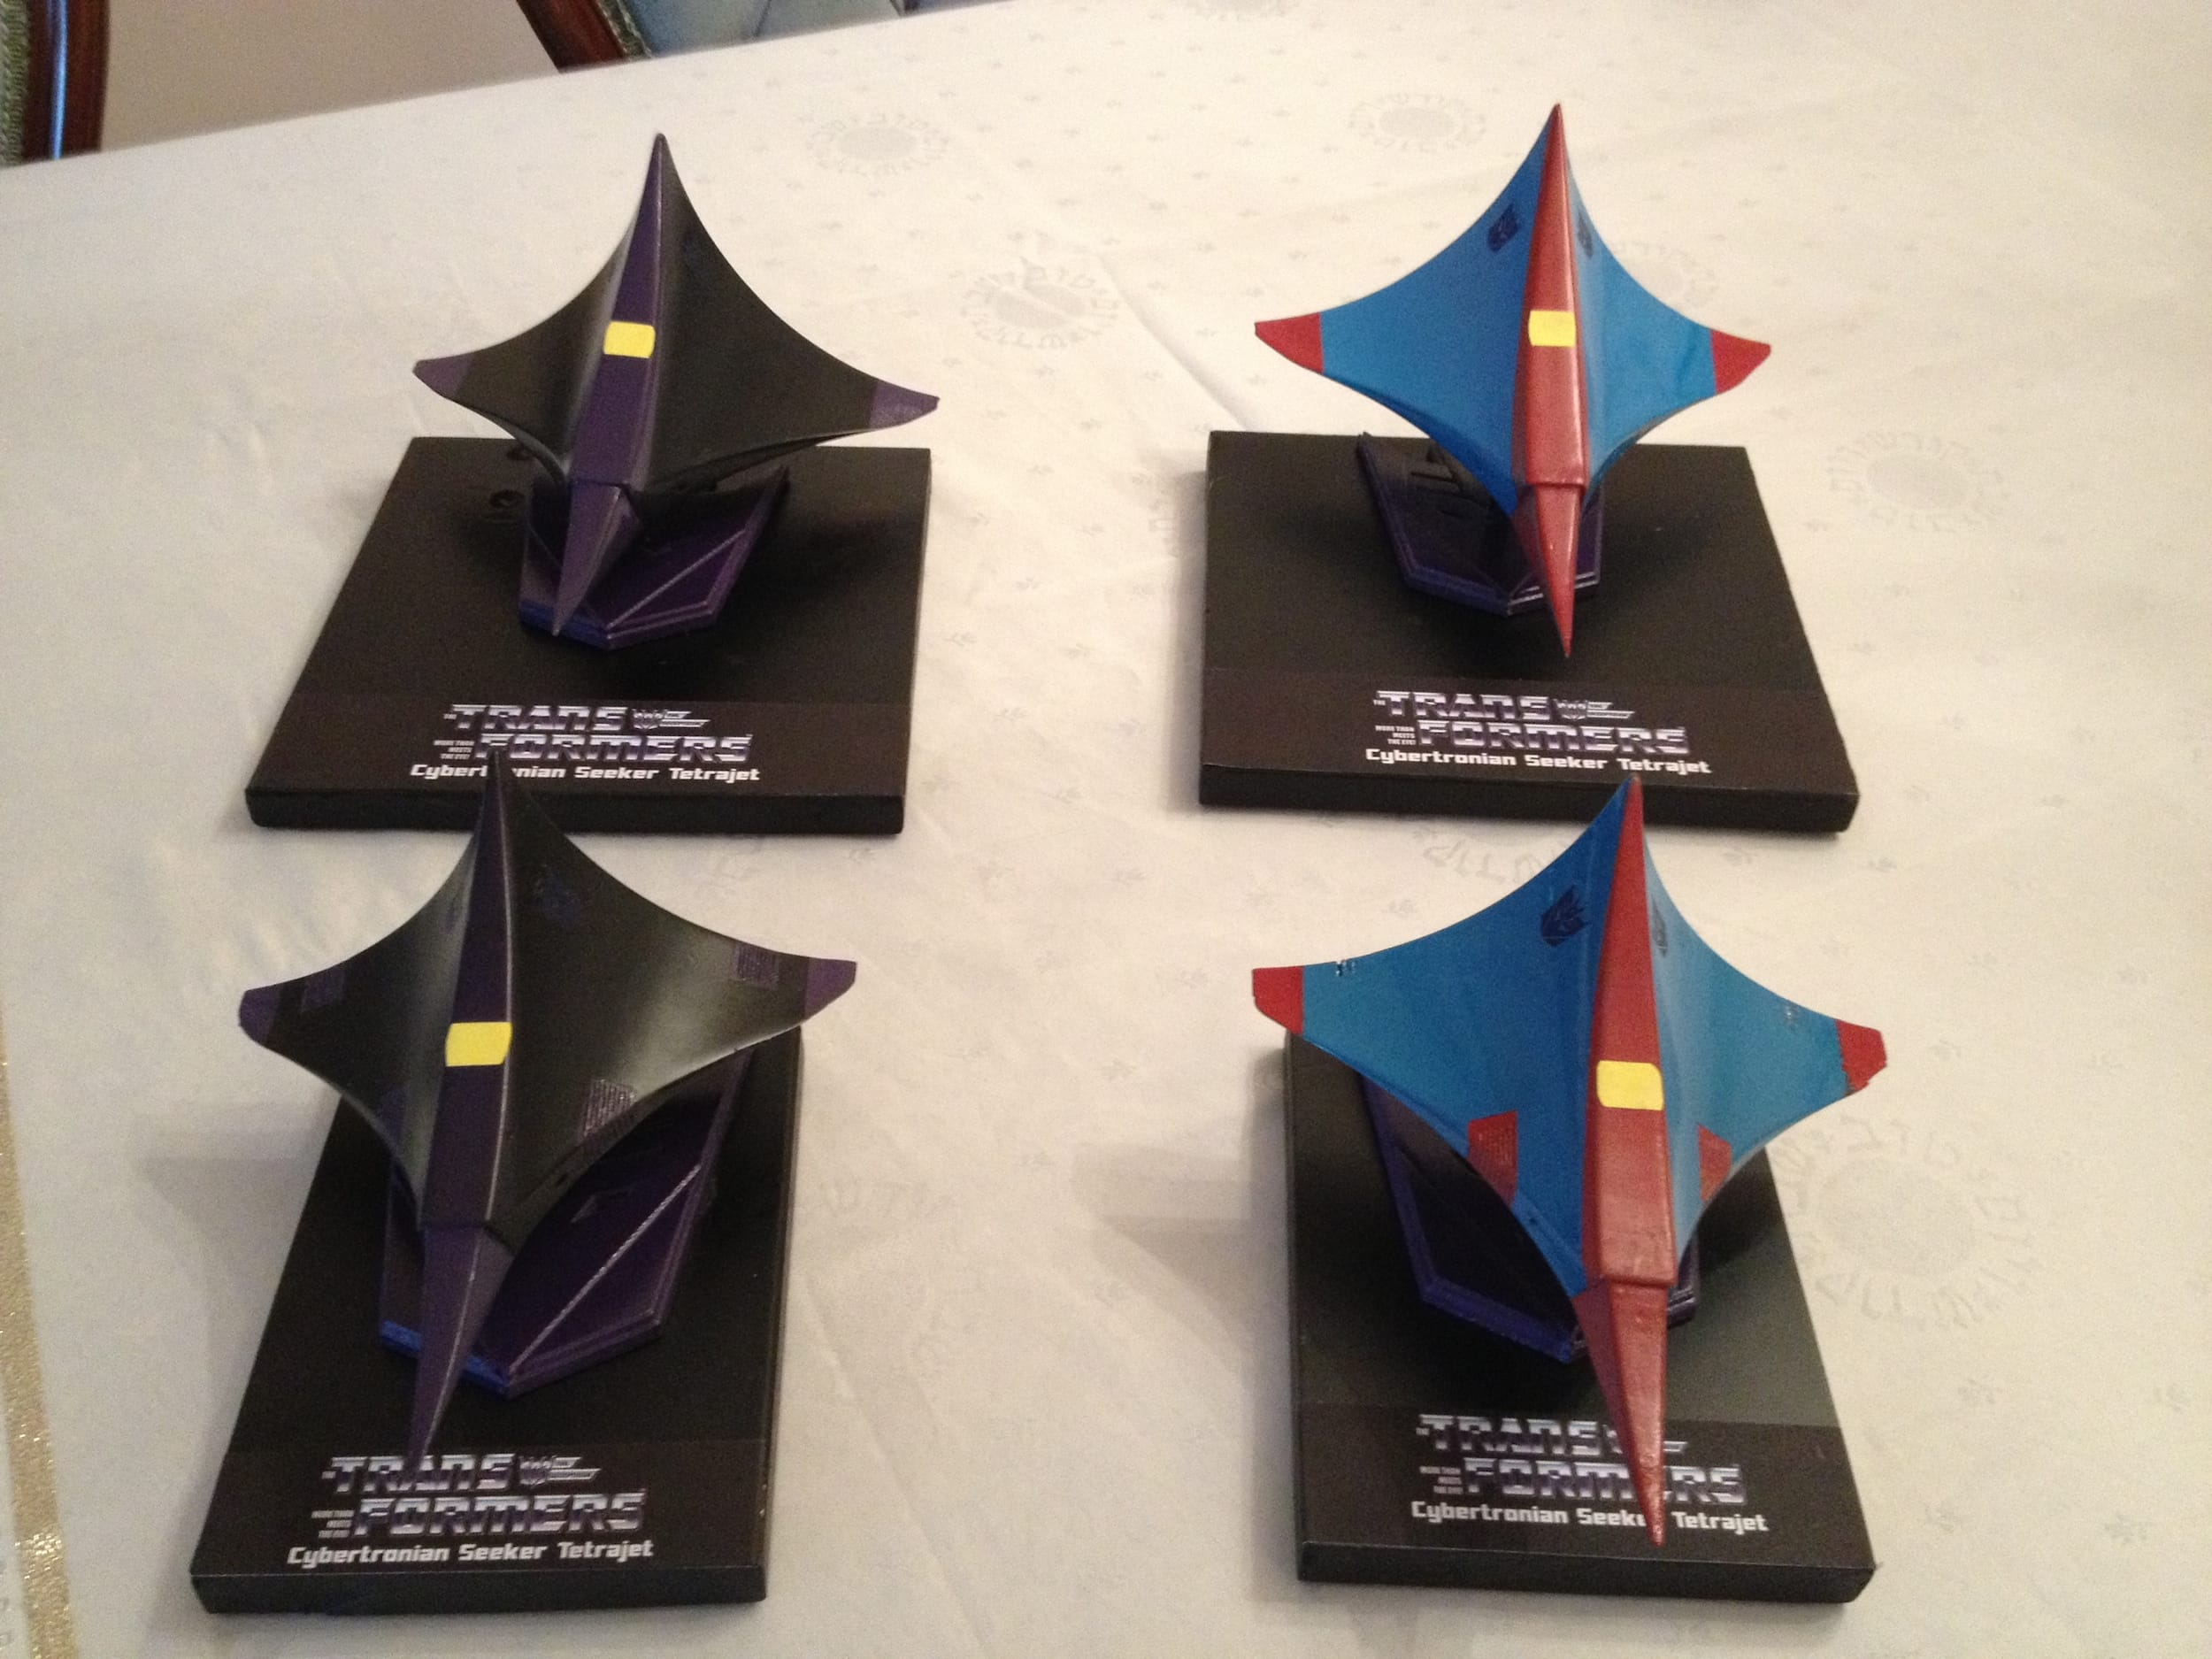 All four Tetra jets on display